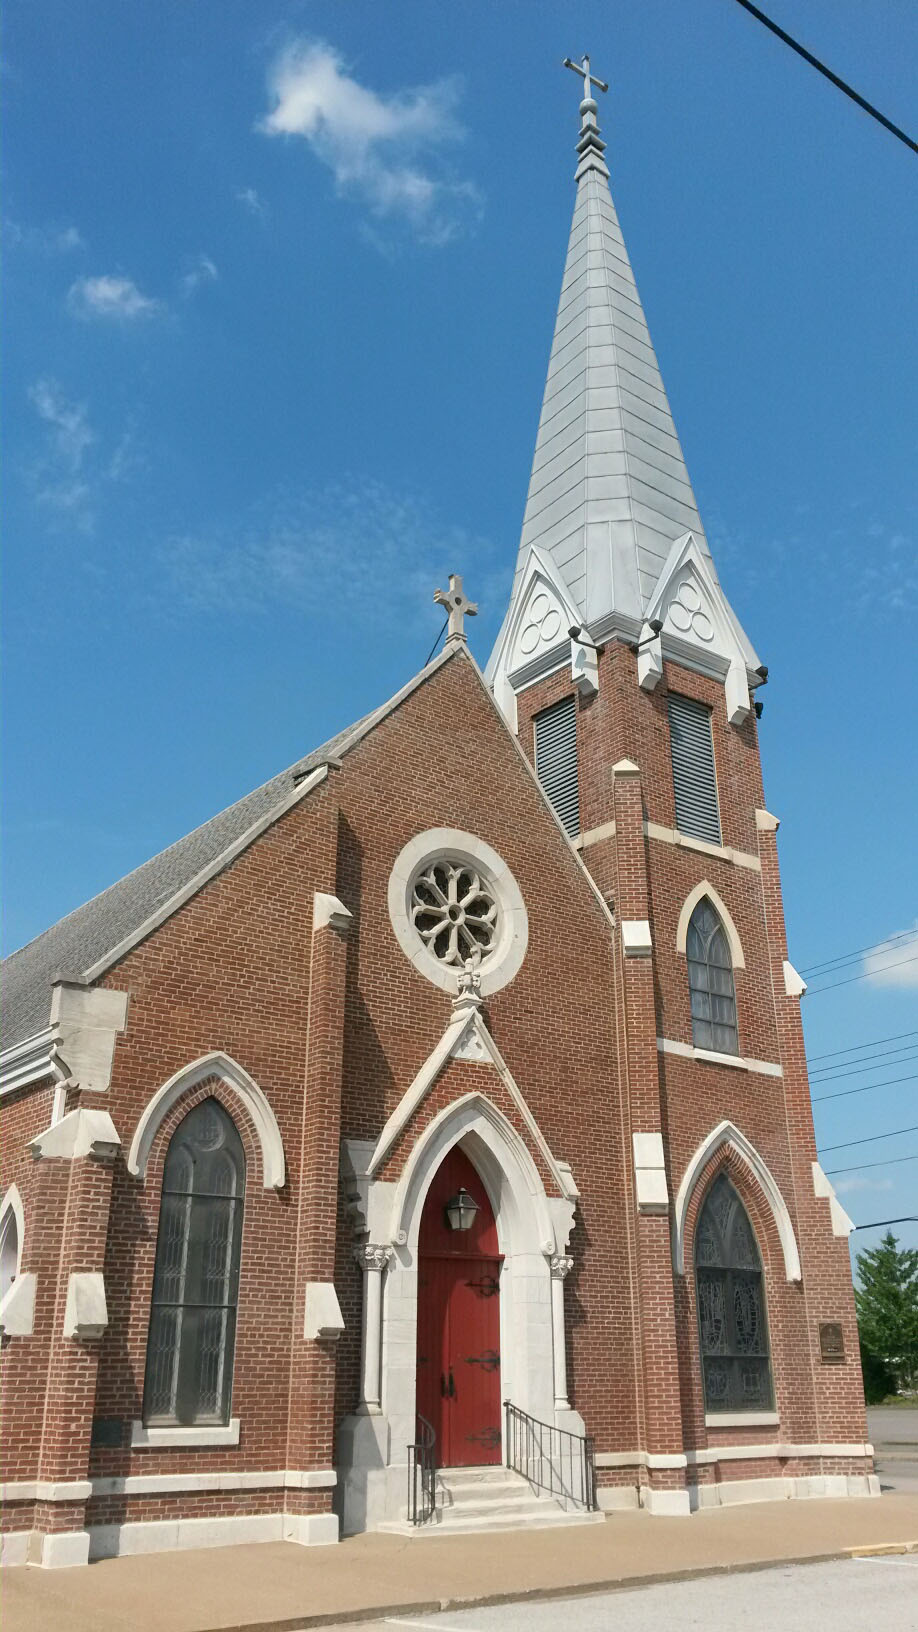 Grace Episcopal Church, Hopkinsville, KY